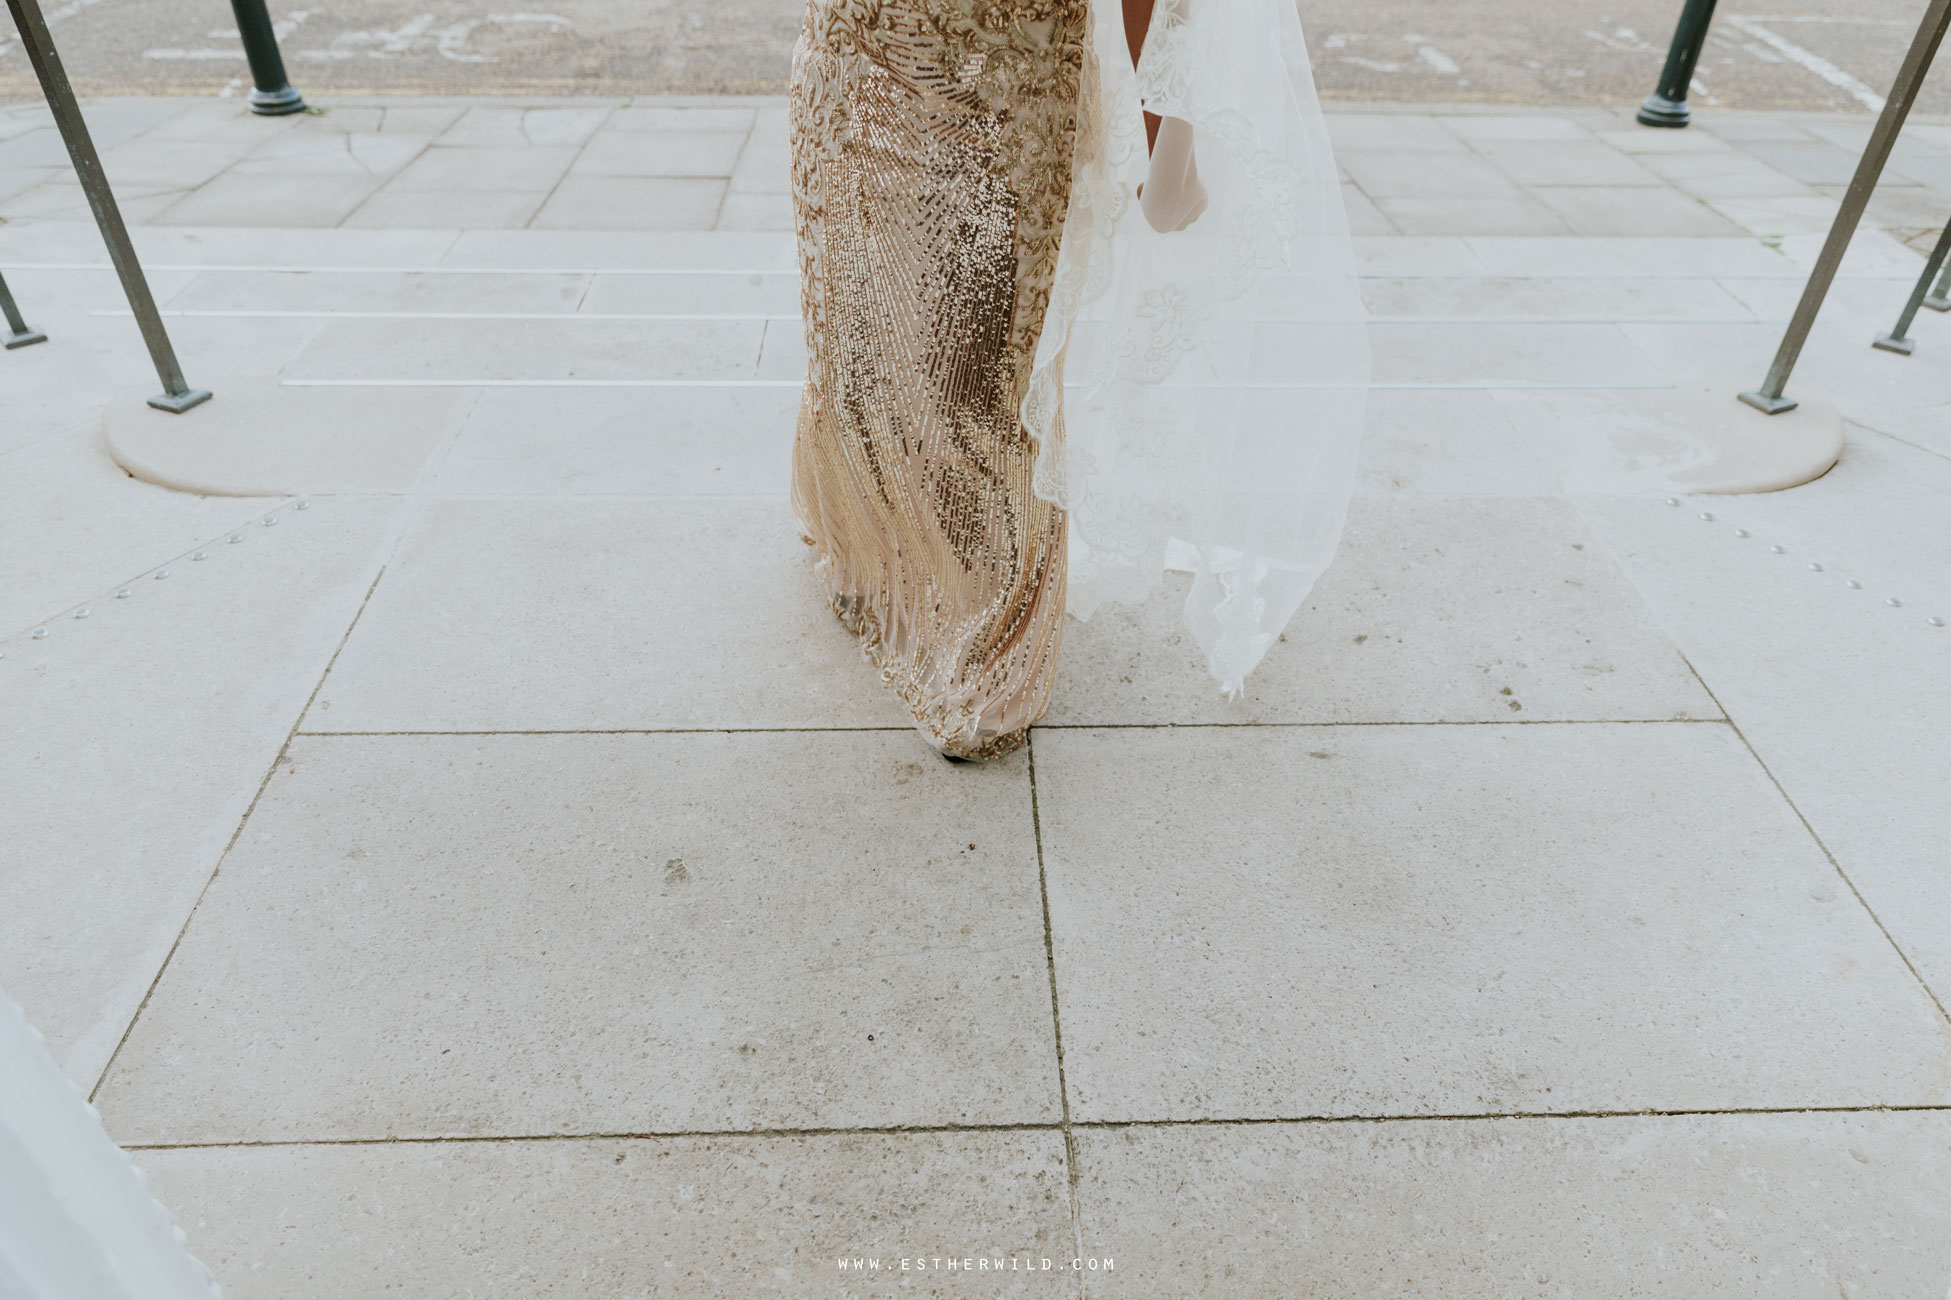 Twickenham_Registry_Office_London_Wedding_Ceremony_Esther_Wild_Photographer_IMG_0052.jpg